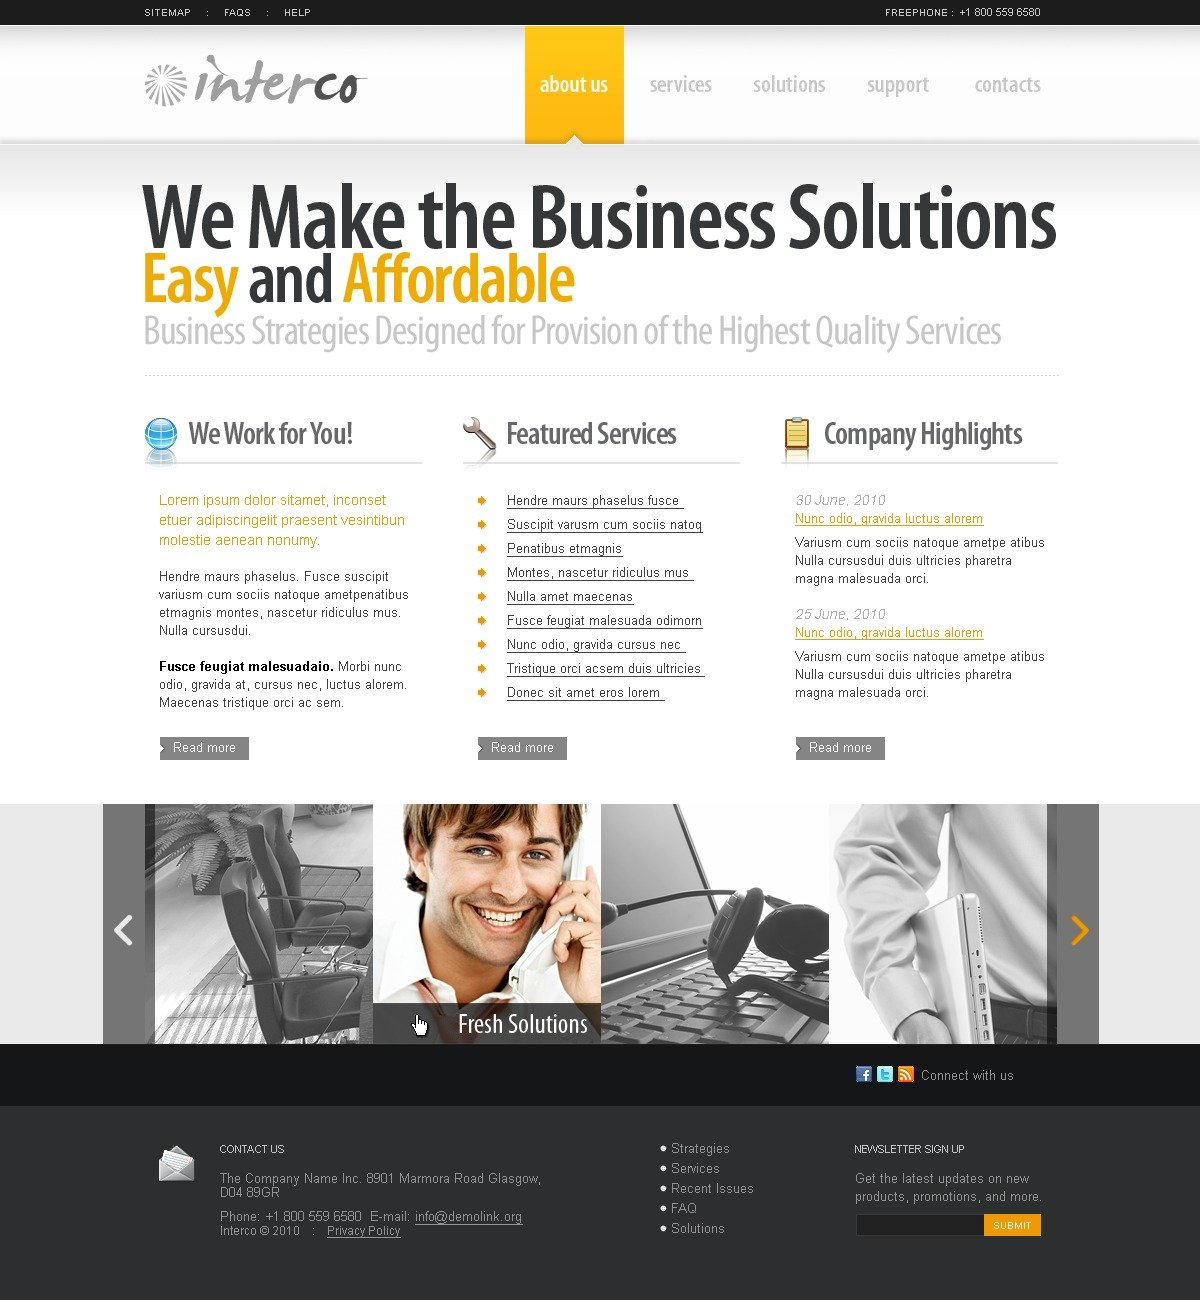 The Interco Business Company PSD Design 54100, one of the best PSD templates of its kind (business, wide, jquery), also known as interco business company PSD template, corporate solutions PSD template, innovations PSD template, contacts PSD template, service PSD template, support PSD template, information dealer PSD template, stocks PSD template, team PSD template, success PSD template, money PSD template, marketing PSD template, director PSD template, manager PSD template, analytics PSD template, planning PSD template, limited PSD template, office PSD template, sales and related with interco business company, corporate solutions, innovations, contacts, service, support, information dealer, stocks, team, success, money, marketing, director, manager, analytics, planning, limited, office, sales, etc.